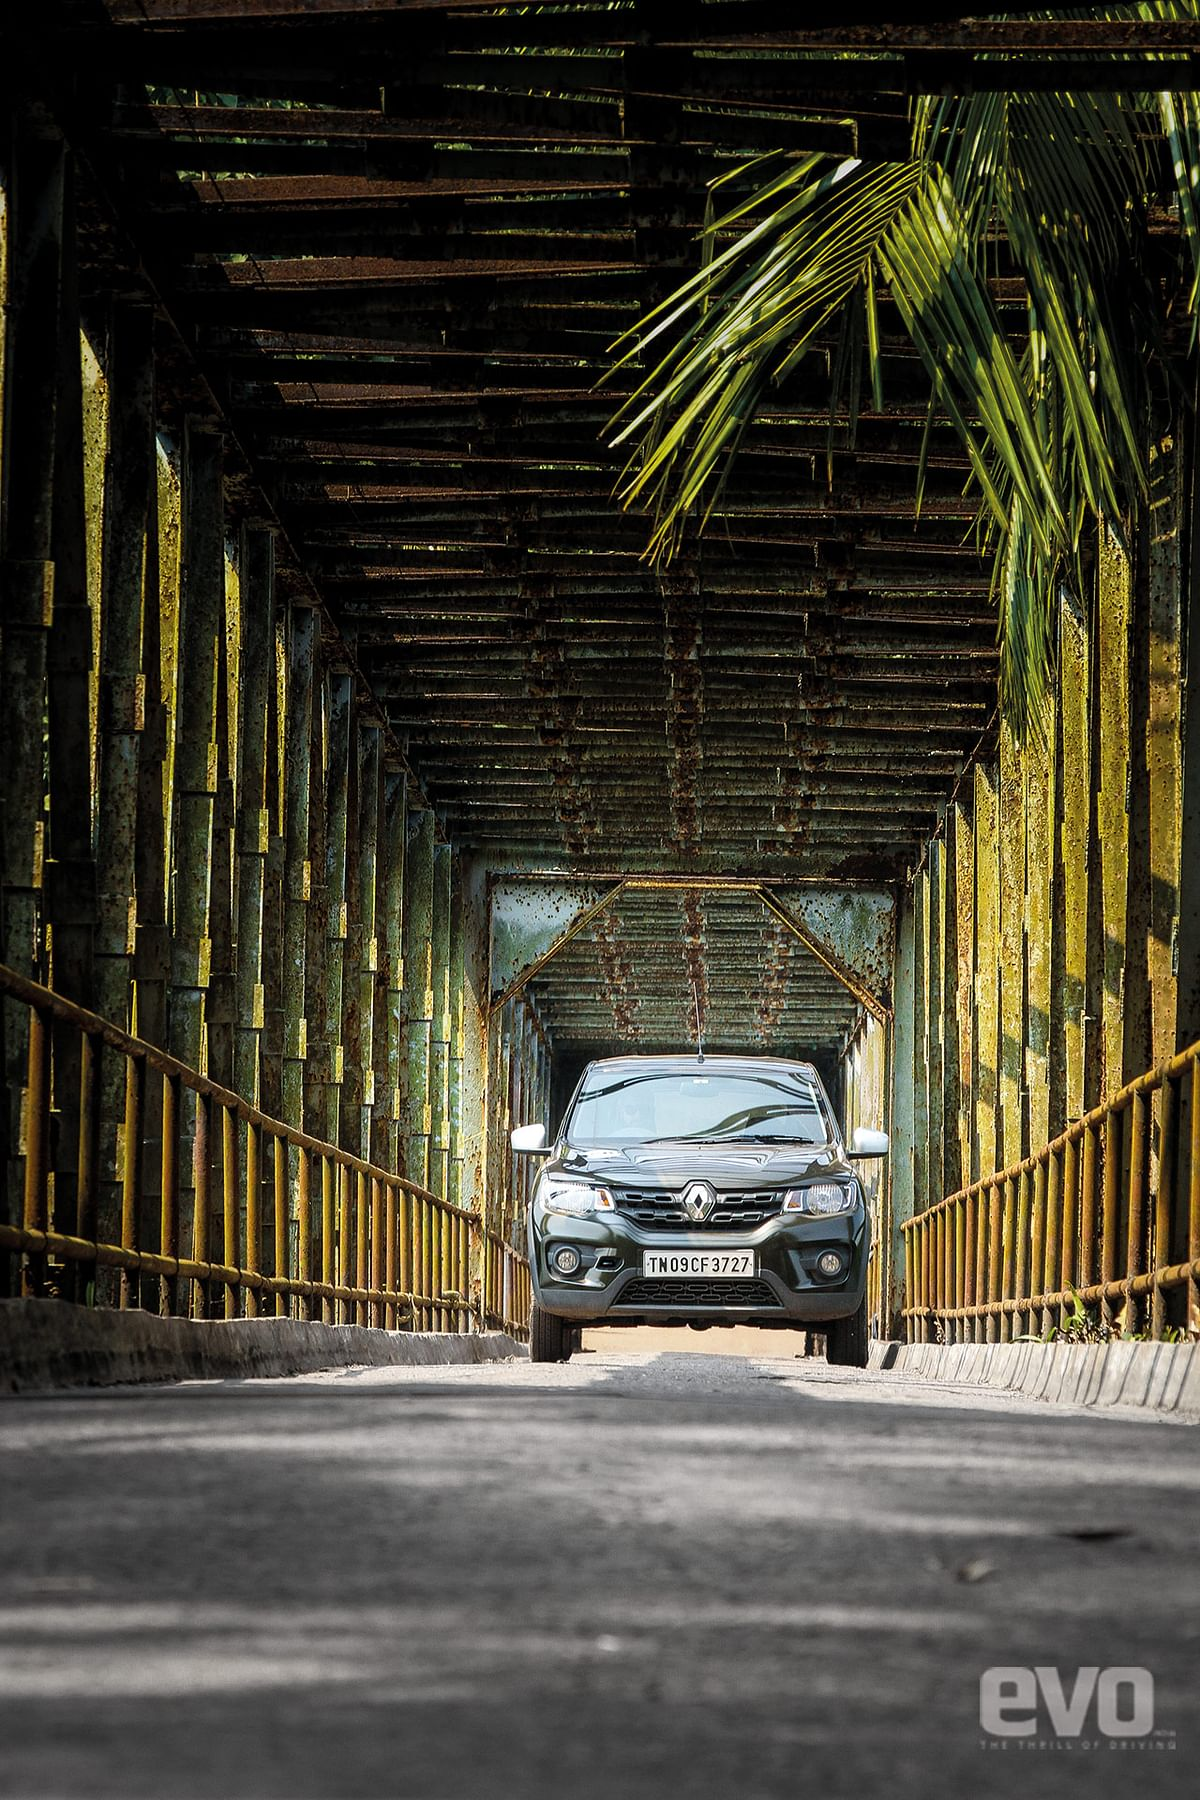 The other side: Driving the Renault Kwid to Goa